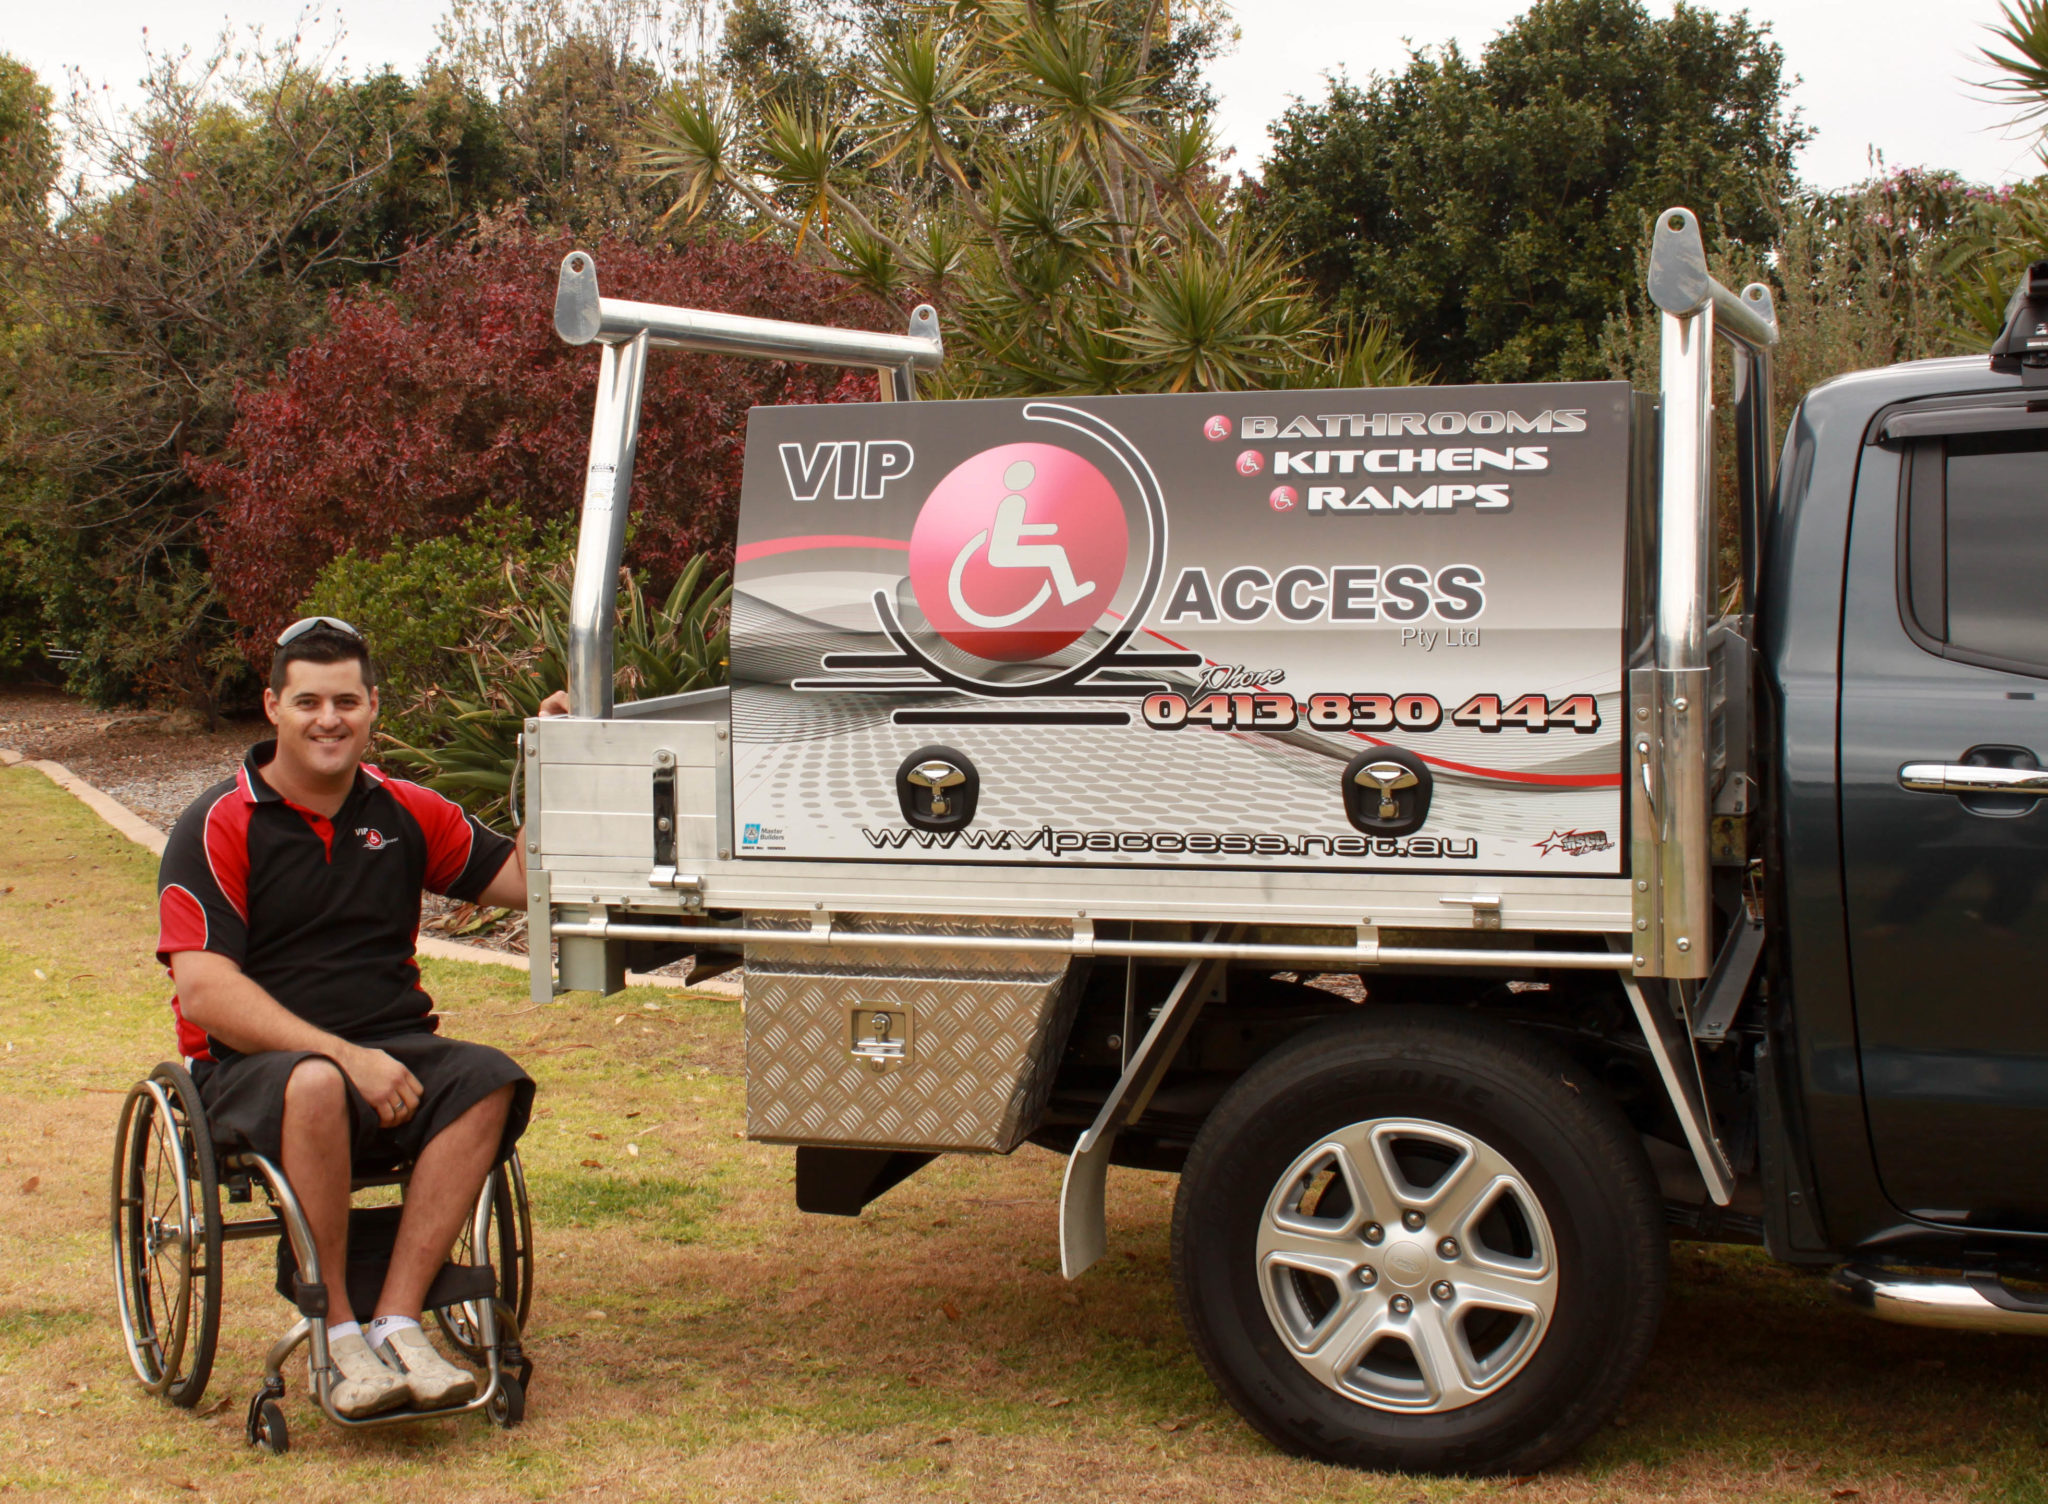 Scott Owner & Builder of VIP Access